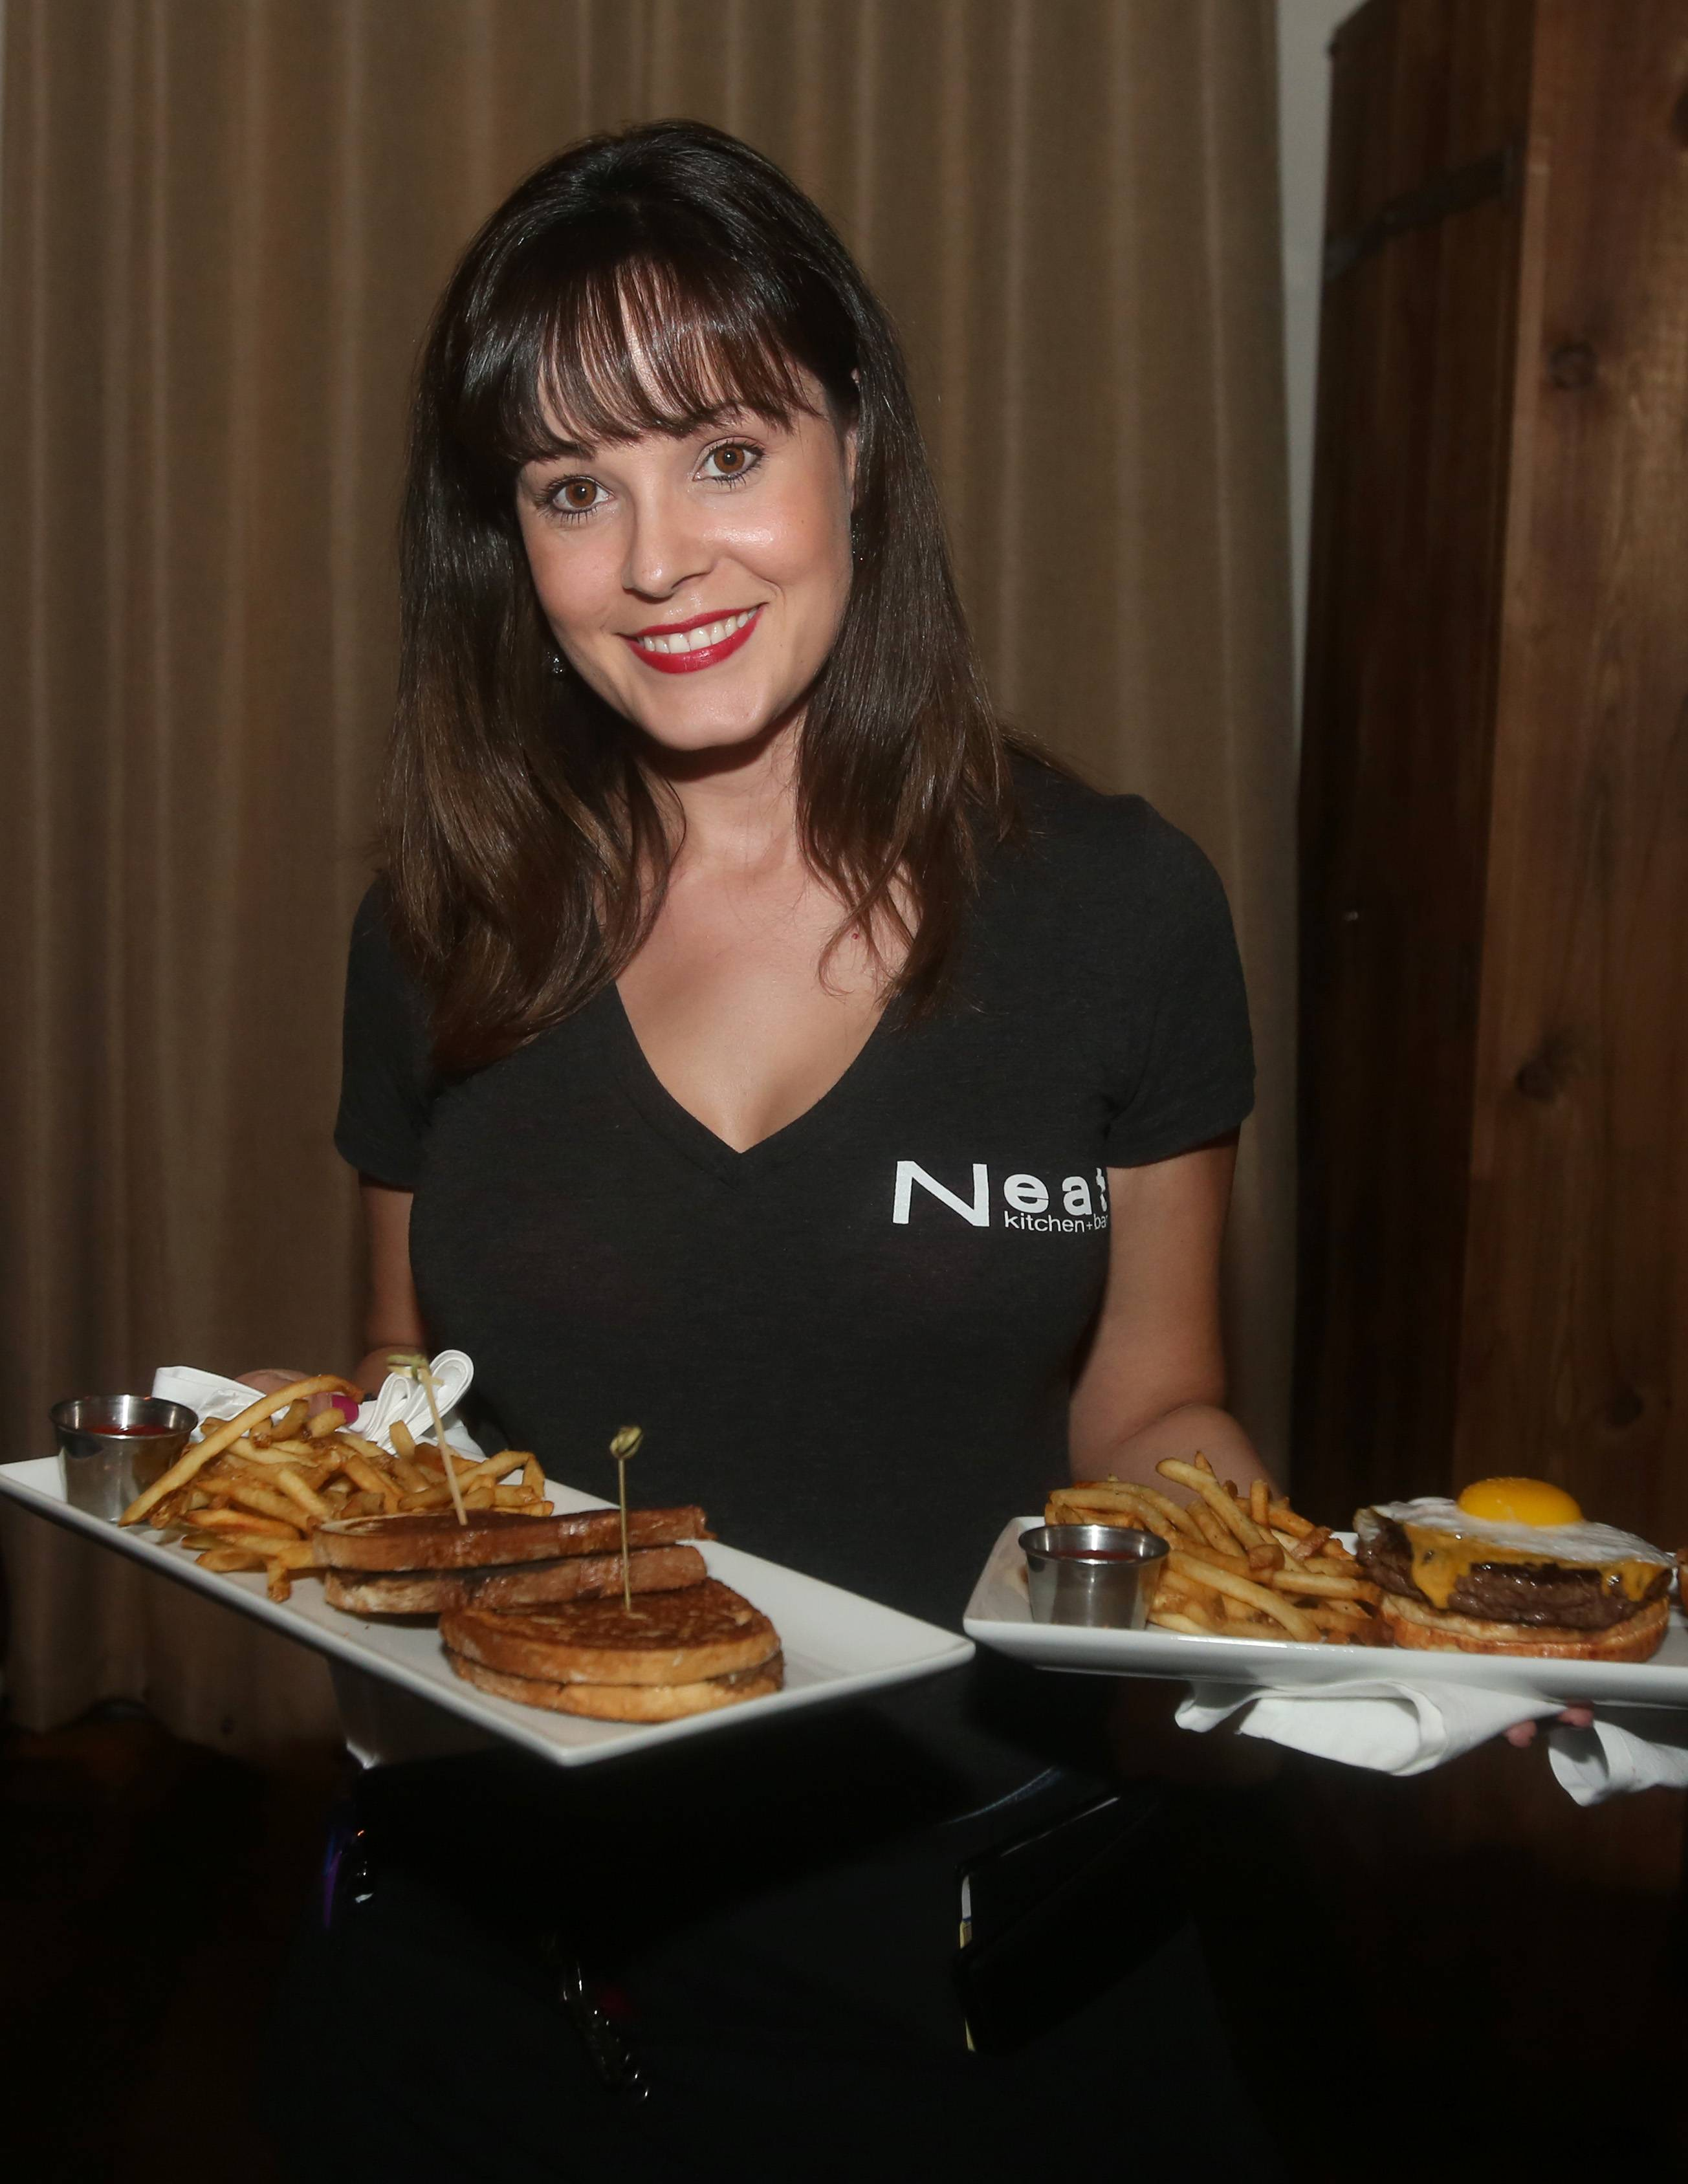 Ely Kritikos serves customers at Neat Kitchen & Bar in Westmont.